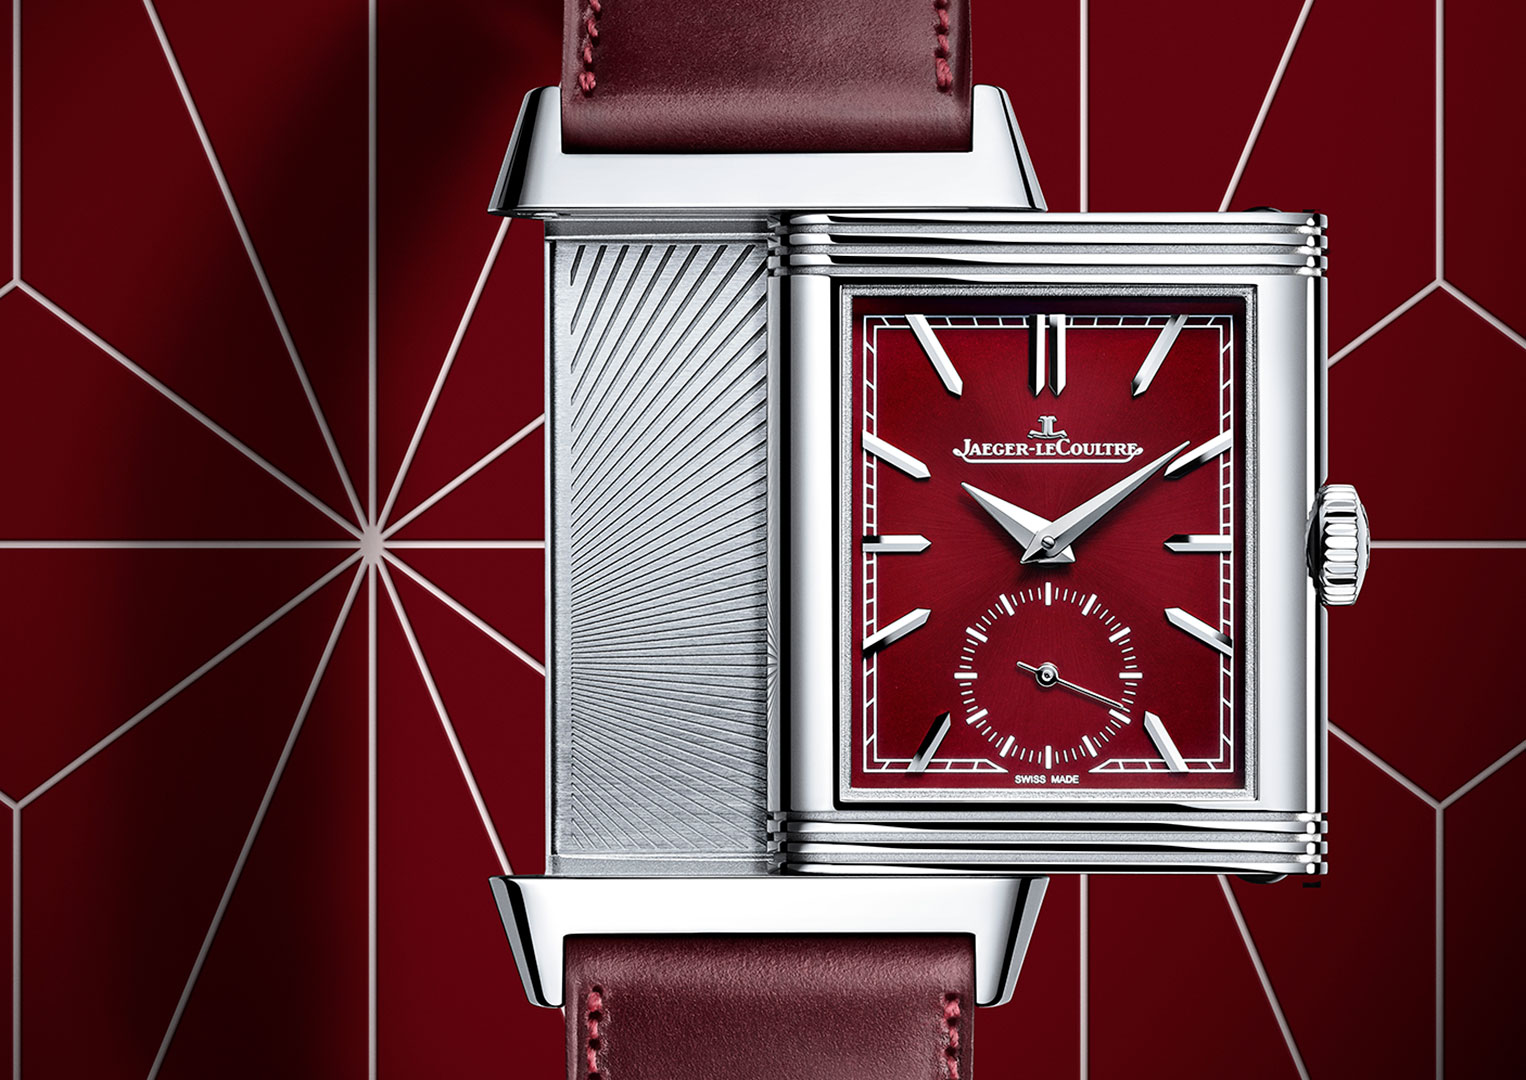 Jaeger-LeCoultre's Reverso, one of the world's most recognisable watches